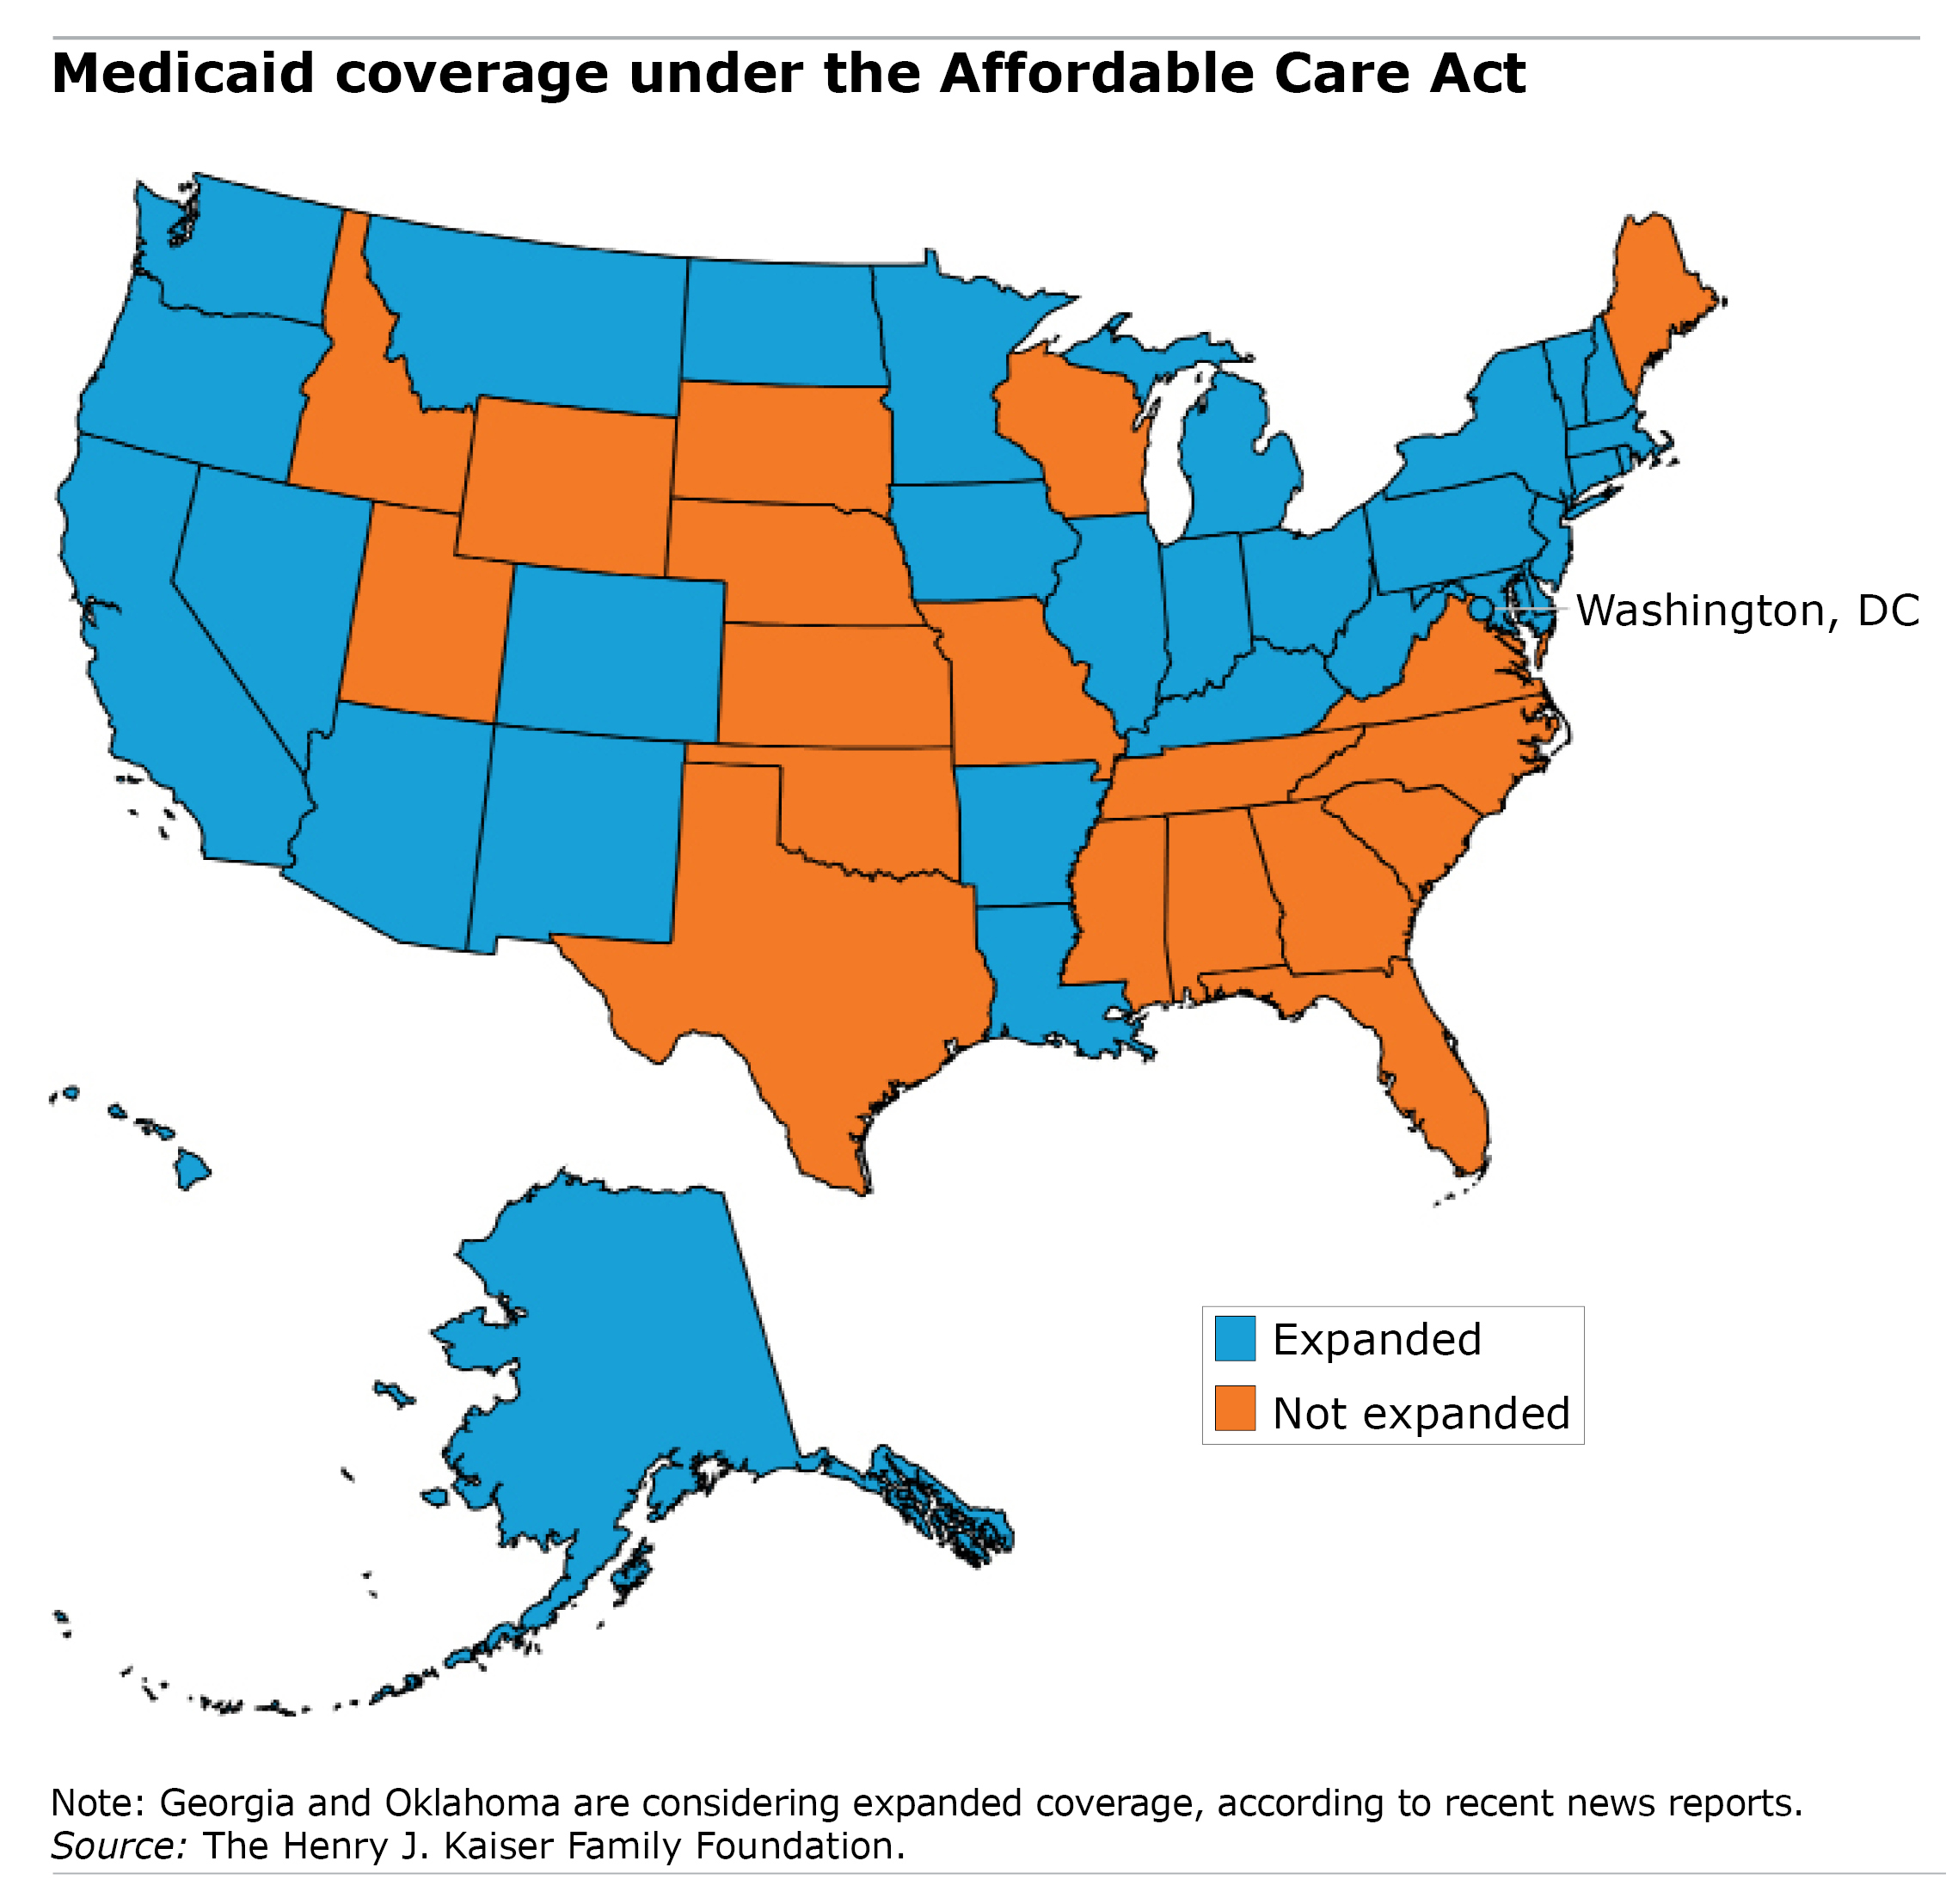 medicaid expension in affordable care act Womens health issues 2018 mar - apr28(2):122-129 doi: 101016/jwhi 201711005 epub 2017 dec 20 impacts of the affordable care act's medicaid expansion on women of reproductive age: differences by parental status and state policies johnston em(1), strahan ae(2), joski p(2), dunlop al(3), adams ek(2.